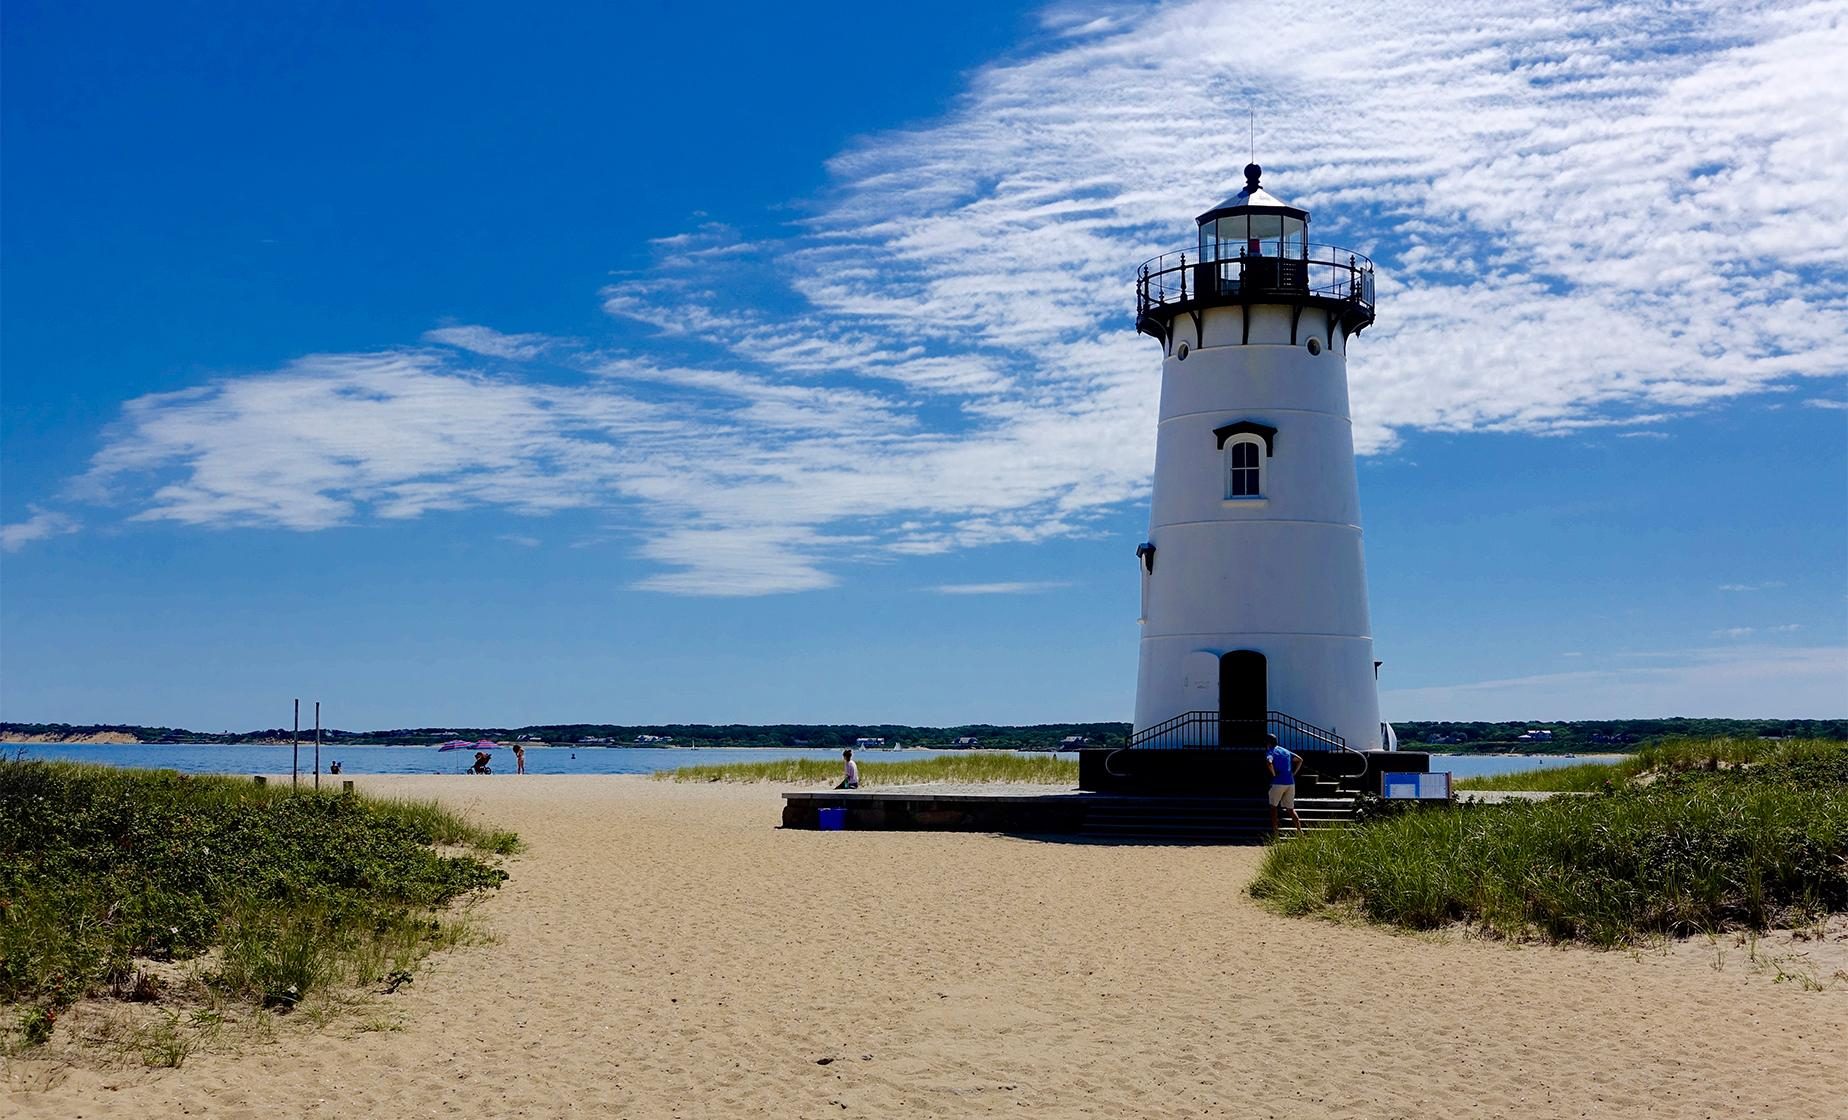 Martha's Vineyard Day Trip Tour from Boston (Cape Cod, Vineyard Sound)